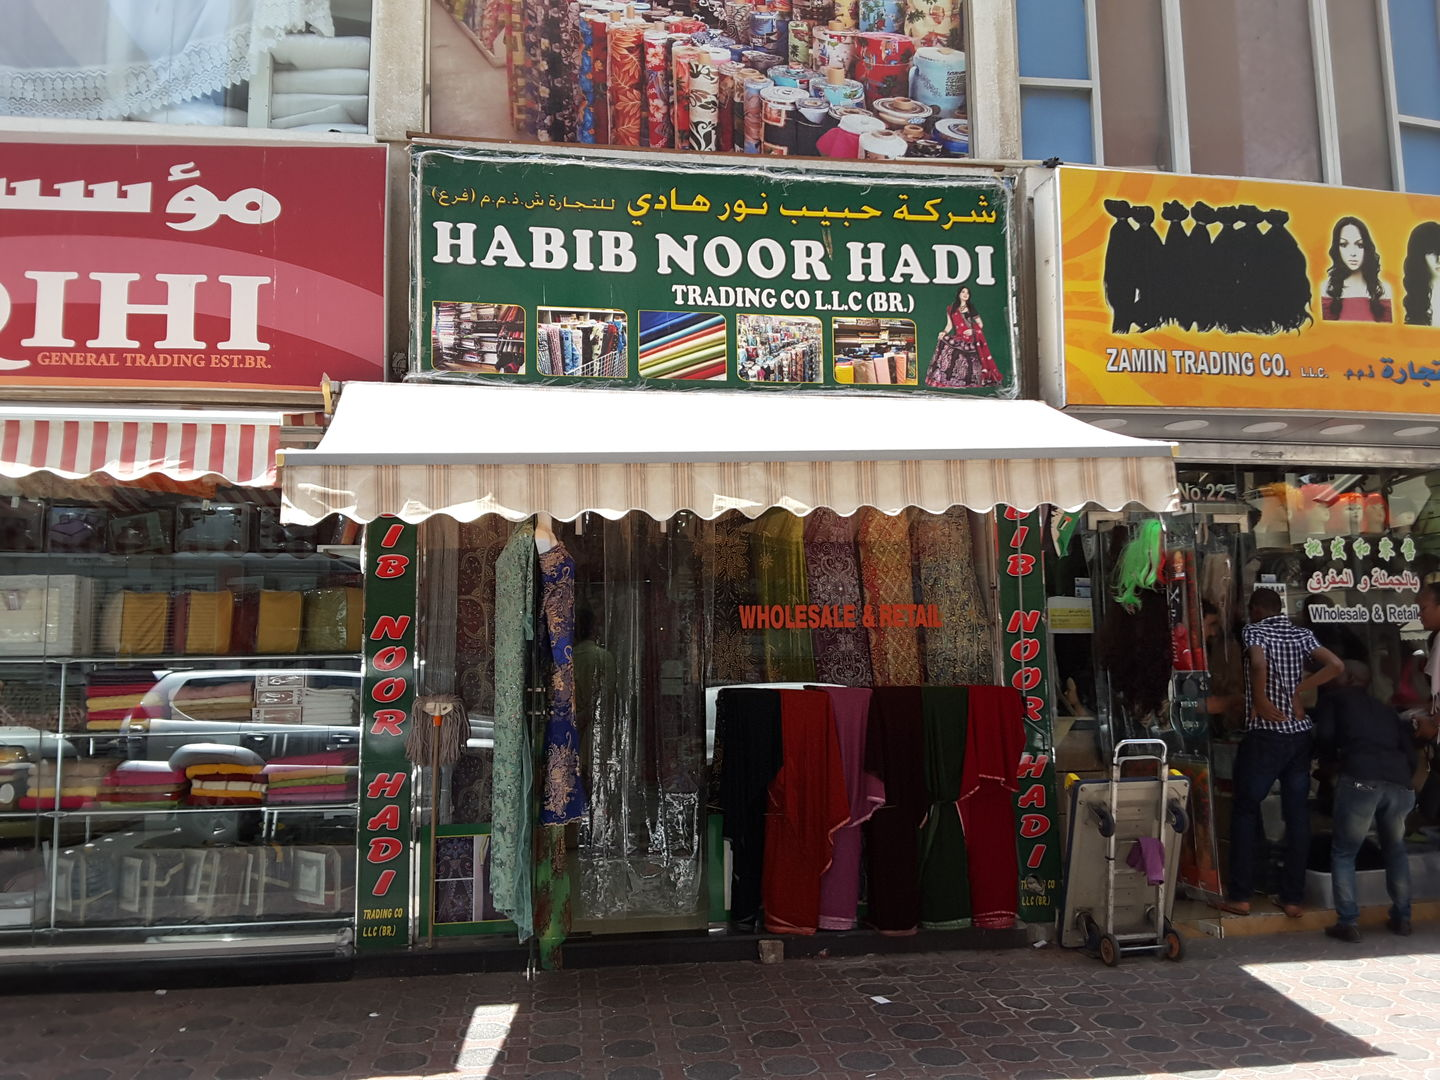 HiDubai-business-habib-noori-hadi-trading-shopping-apparel-naif-dubai-2